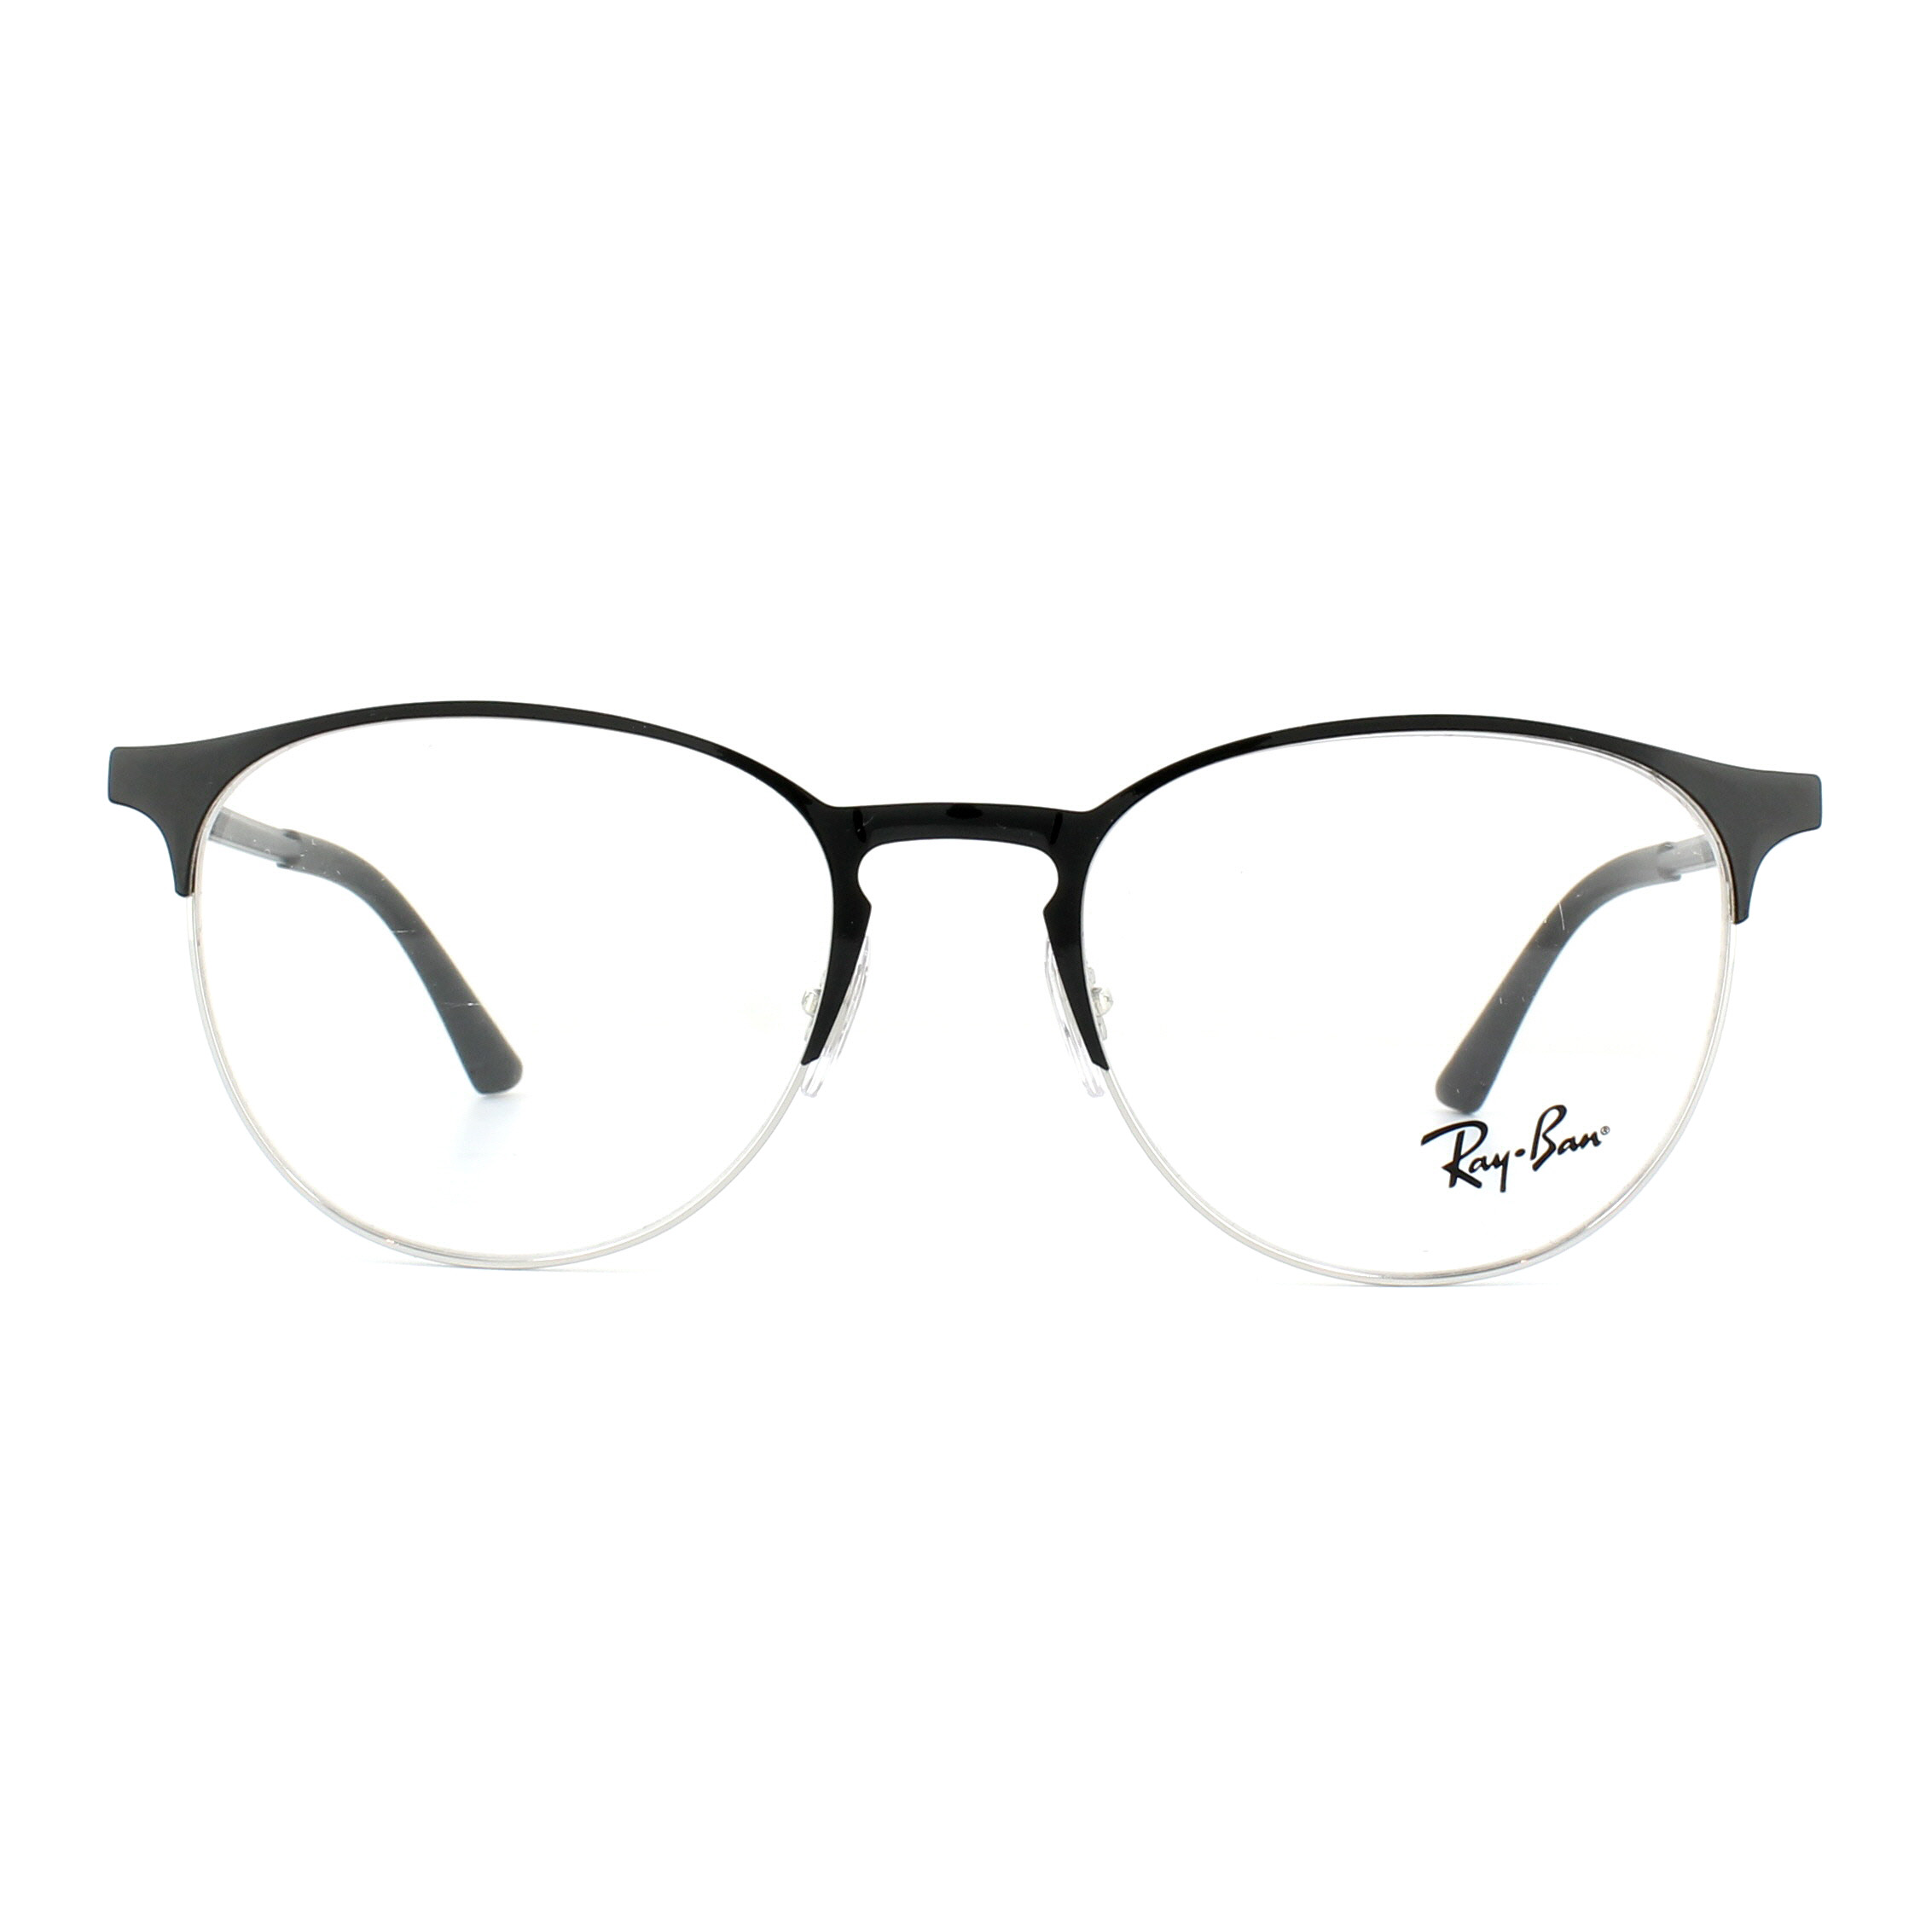 764a17e868 Sentinel Ray-Ban Glasses Frames 6375 2861 Silver on Top Black 51mm